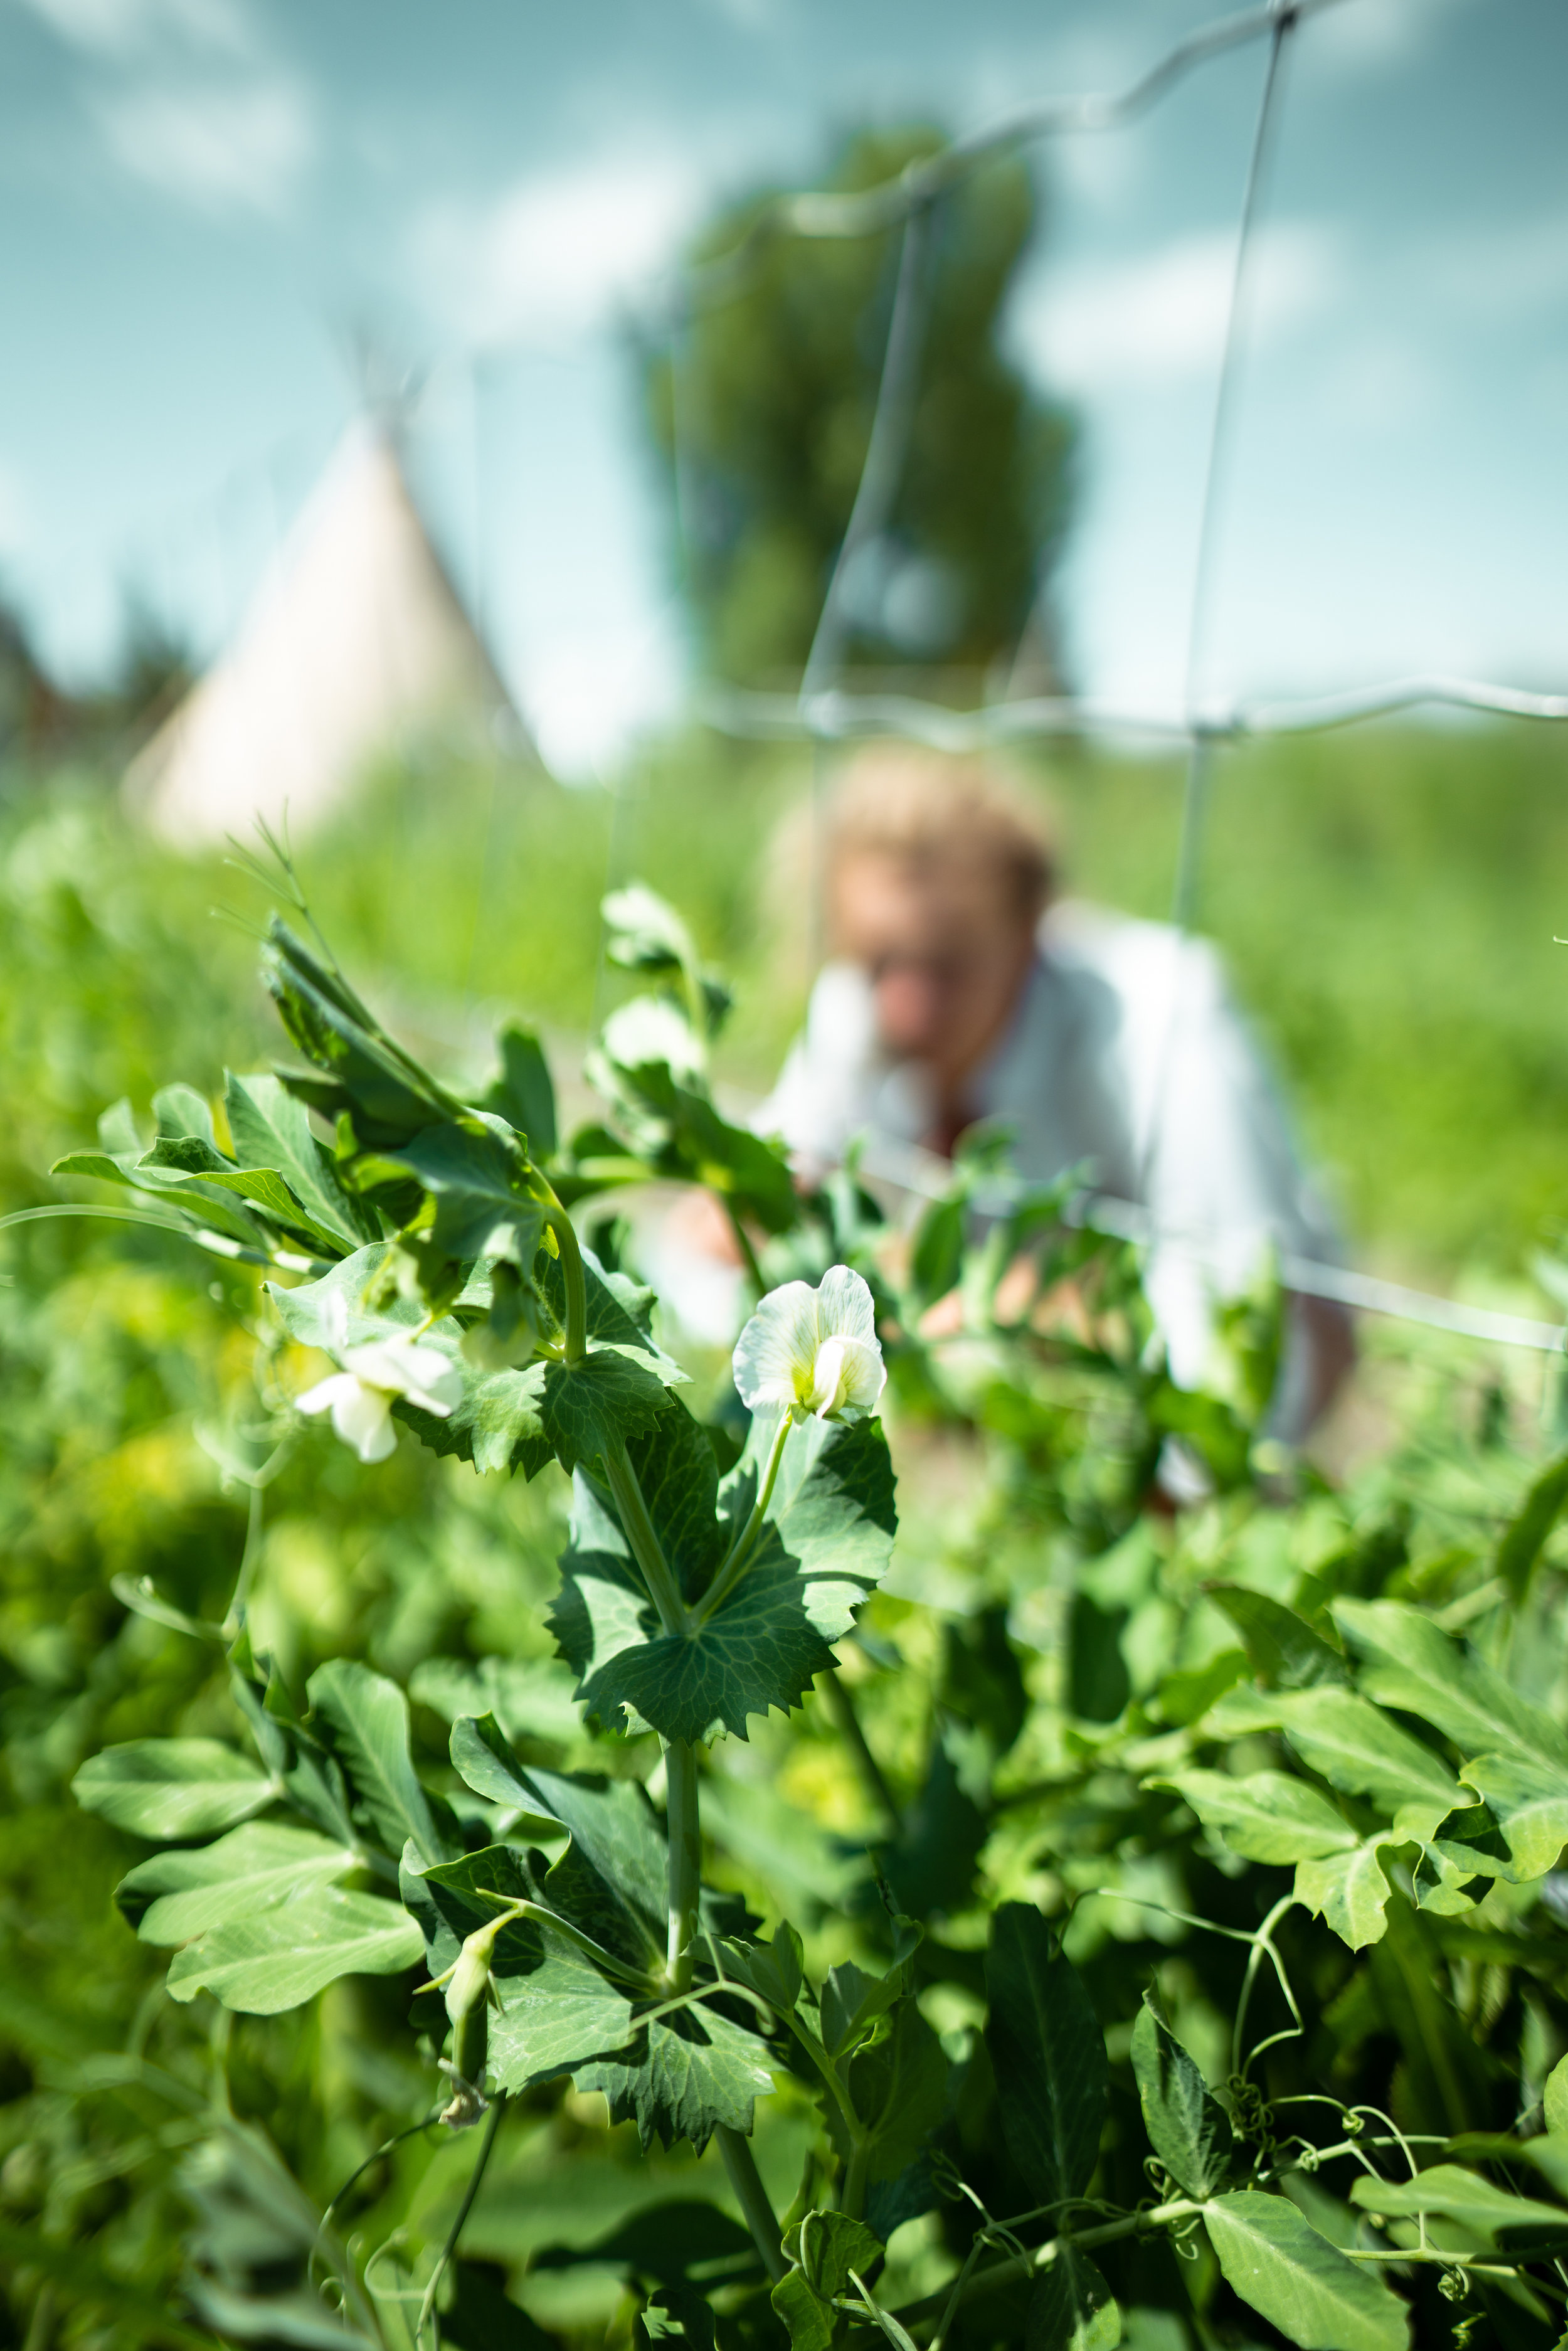 Picking peas at Sprig & Root Farm in Clarkston, Montana.